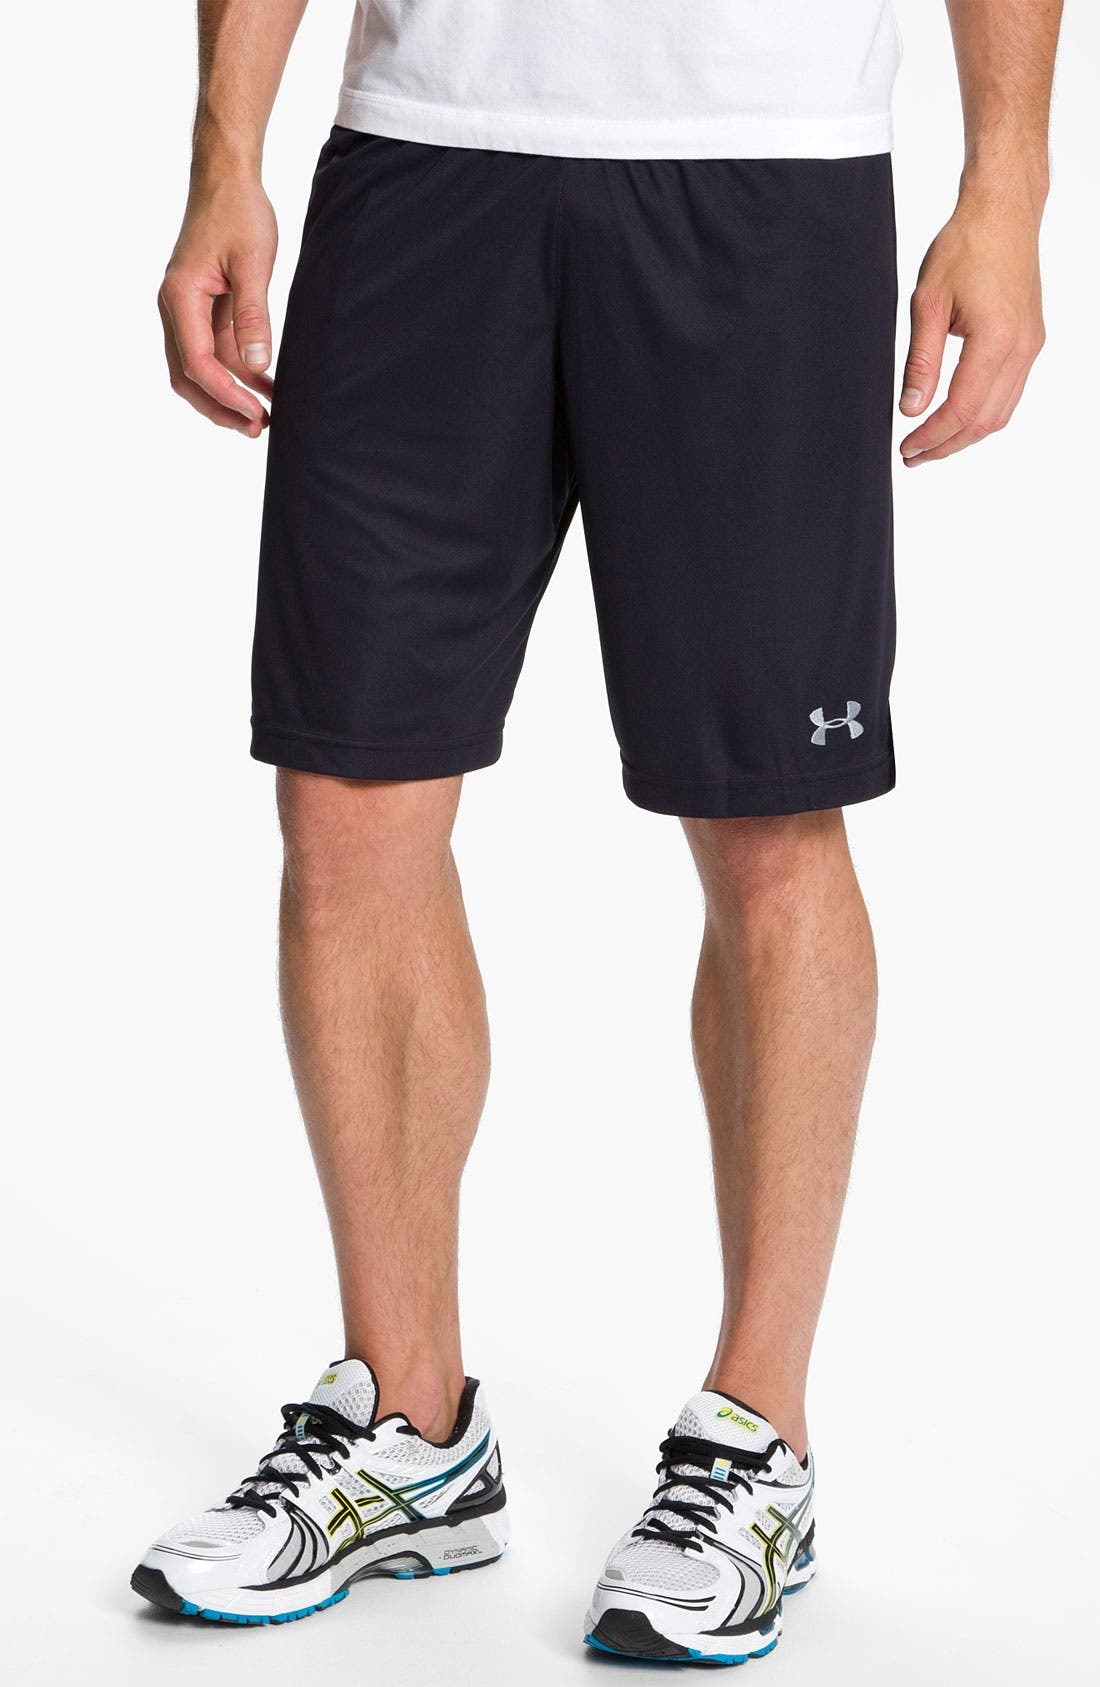 Alternate Image 1 Selected - Under Armour 'Revenant' Shorts